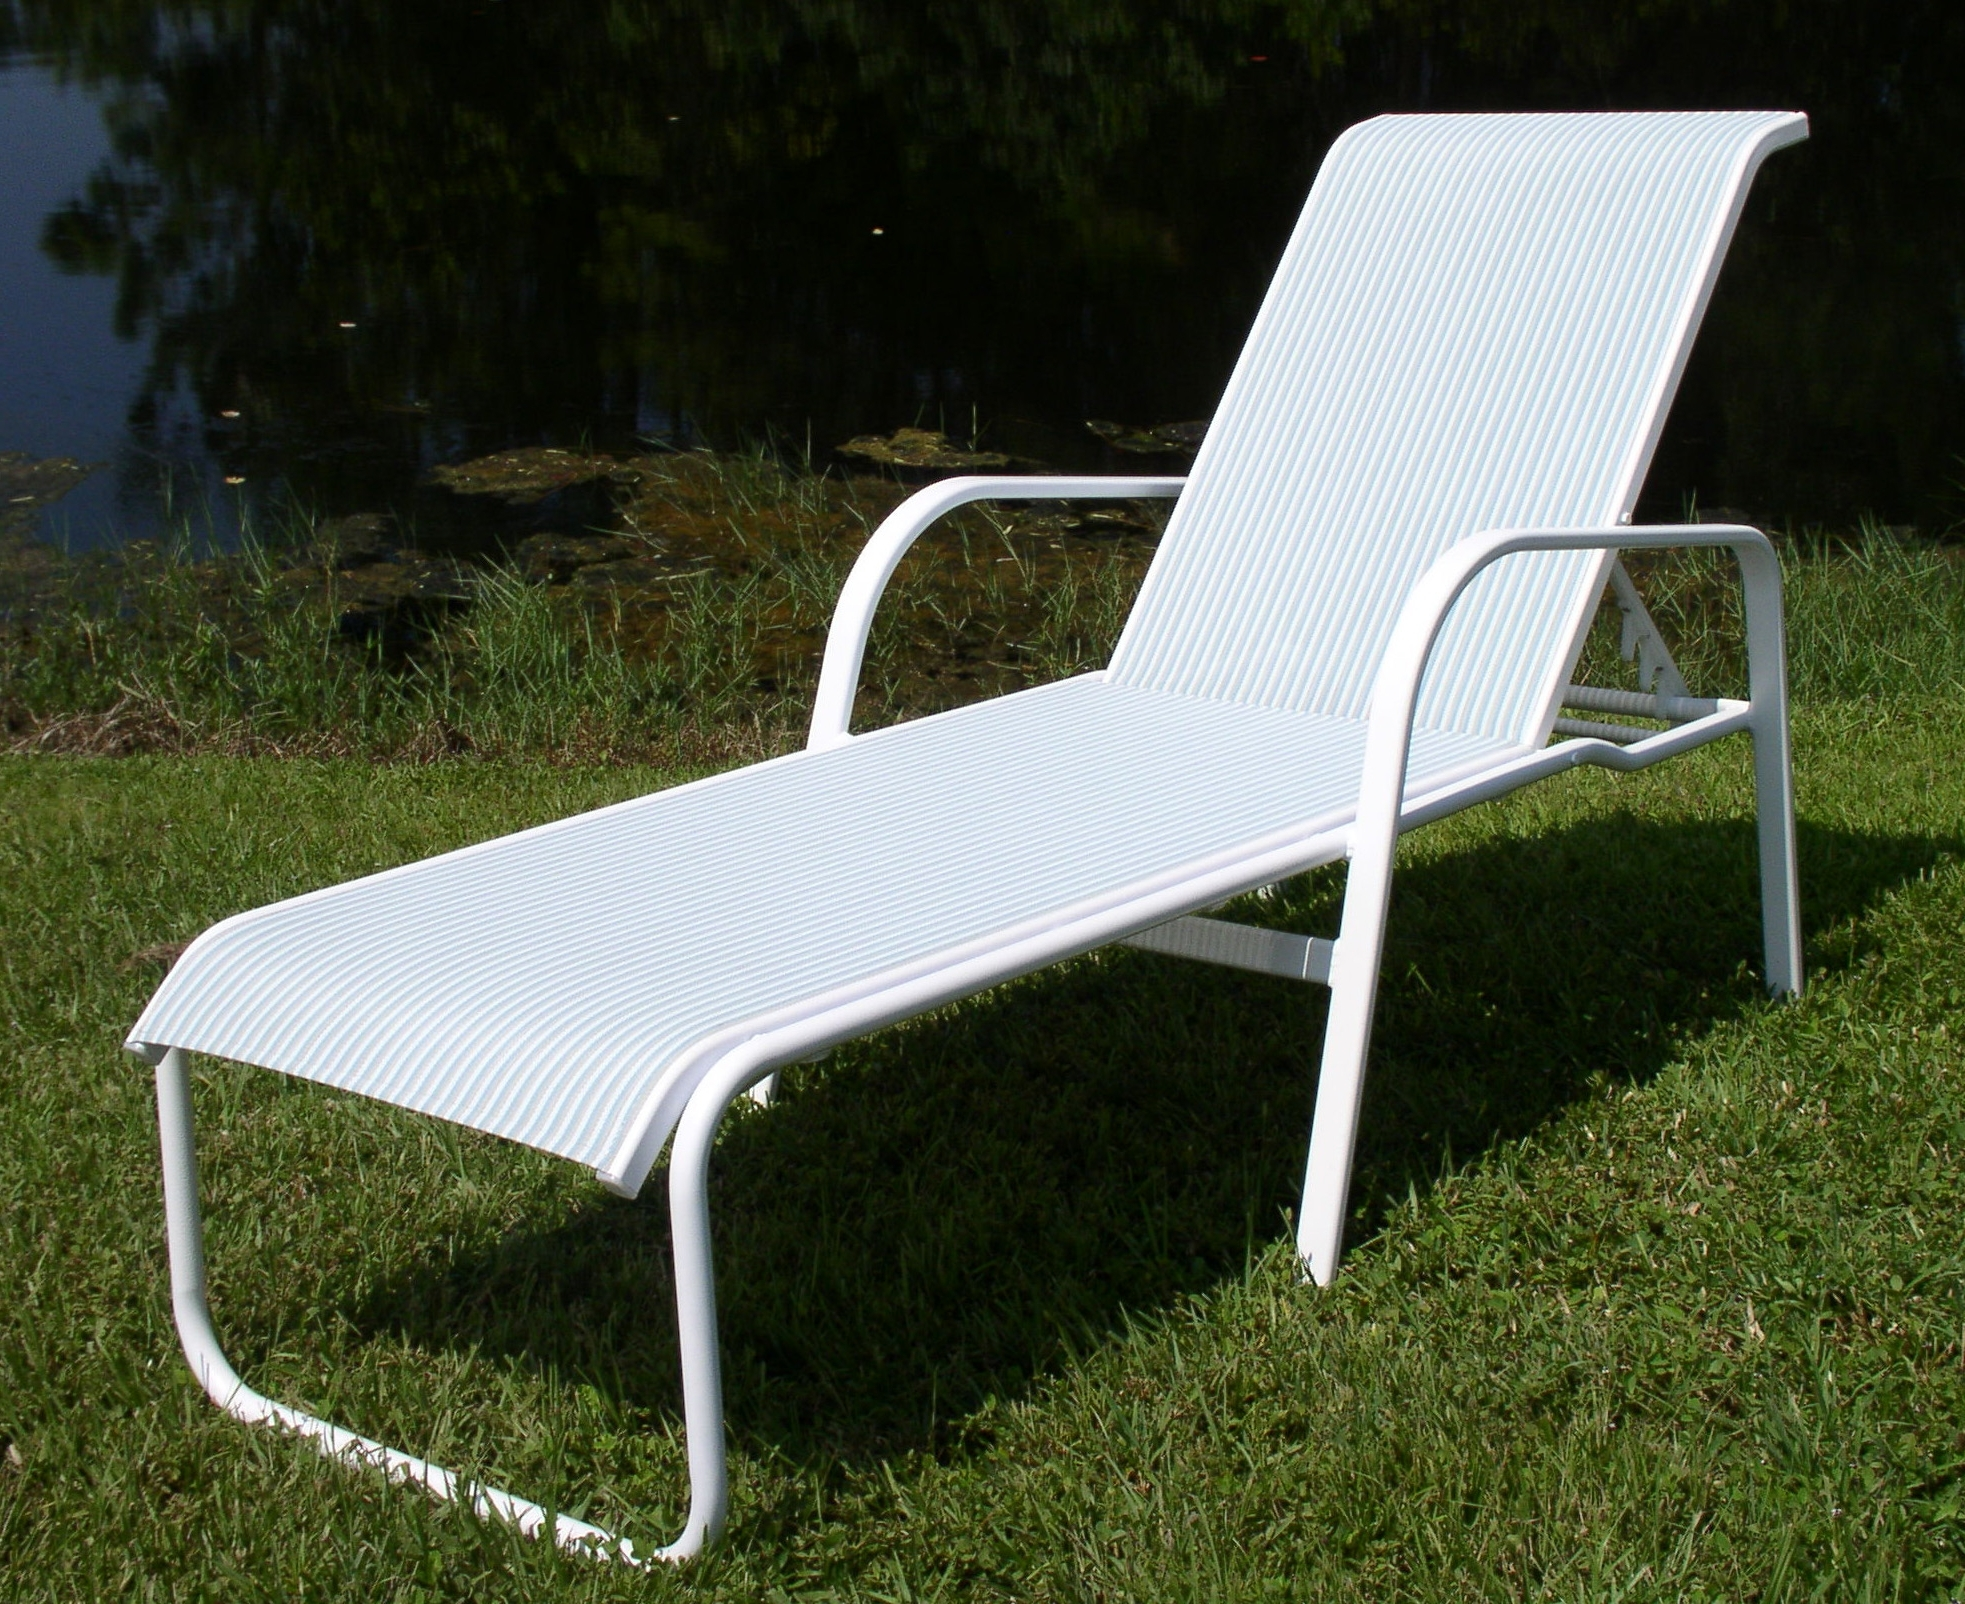 Widely Used Sling Chaise Lounge Chair Attractive Pool Chairs 15 In Seat Ocean Intended For Outdoor Mesh Chaise Lounge Chairs (View 15 of 15)